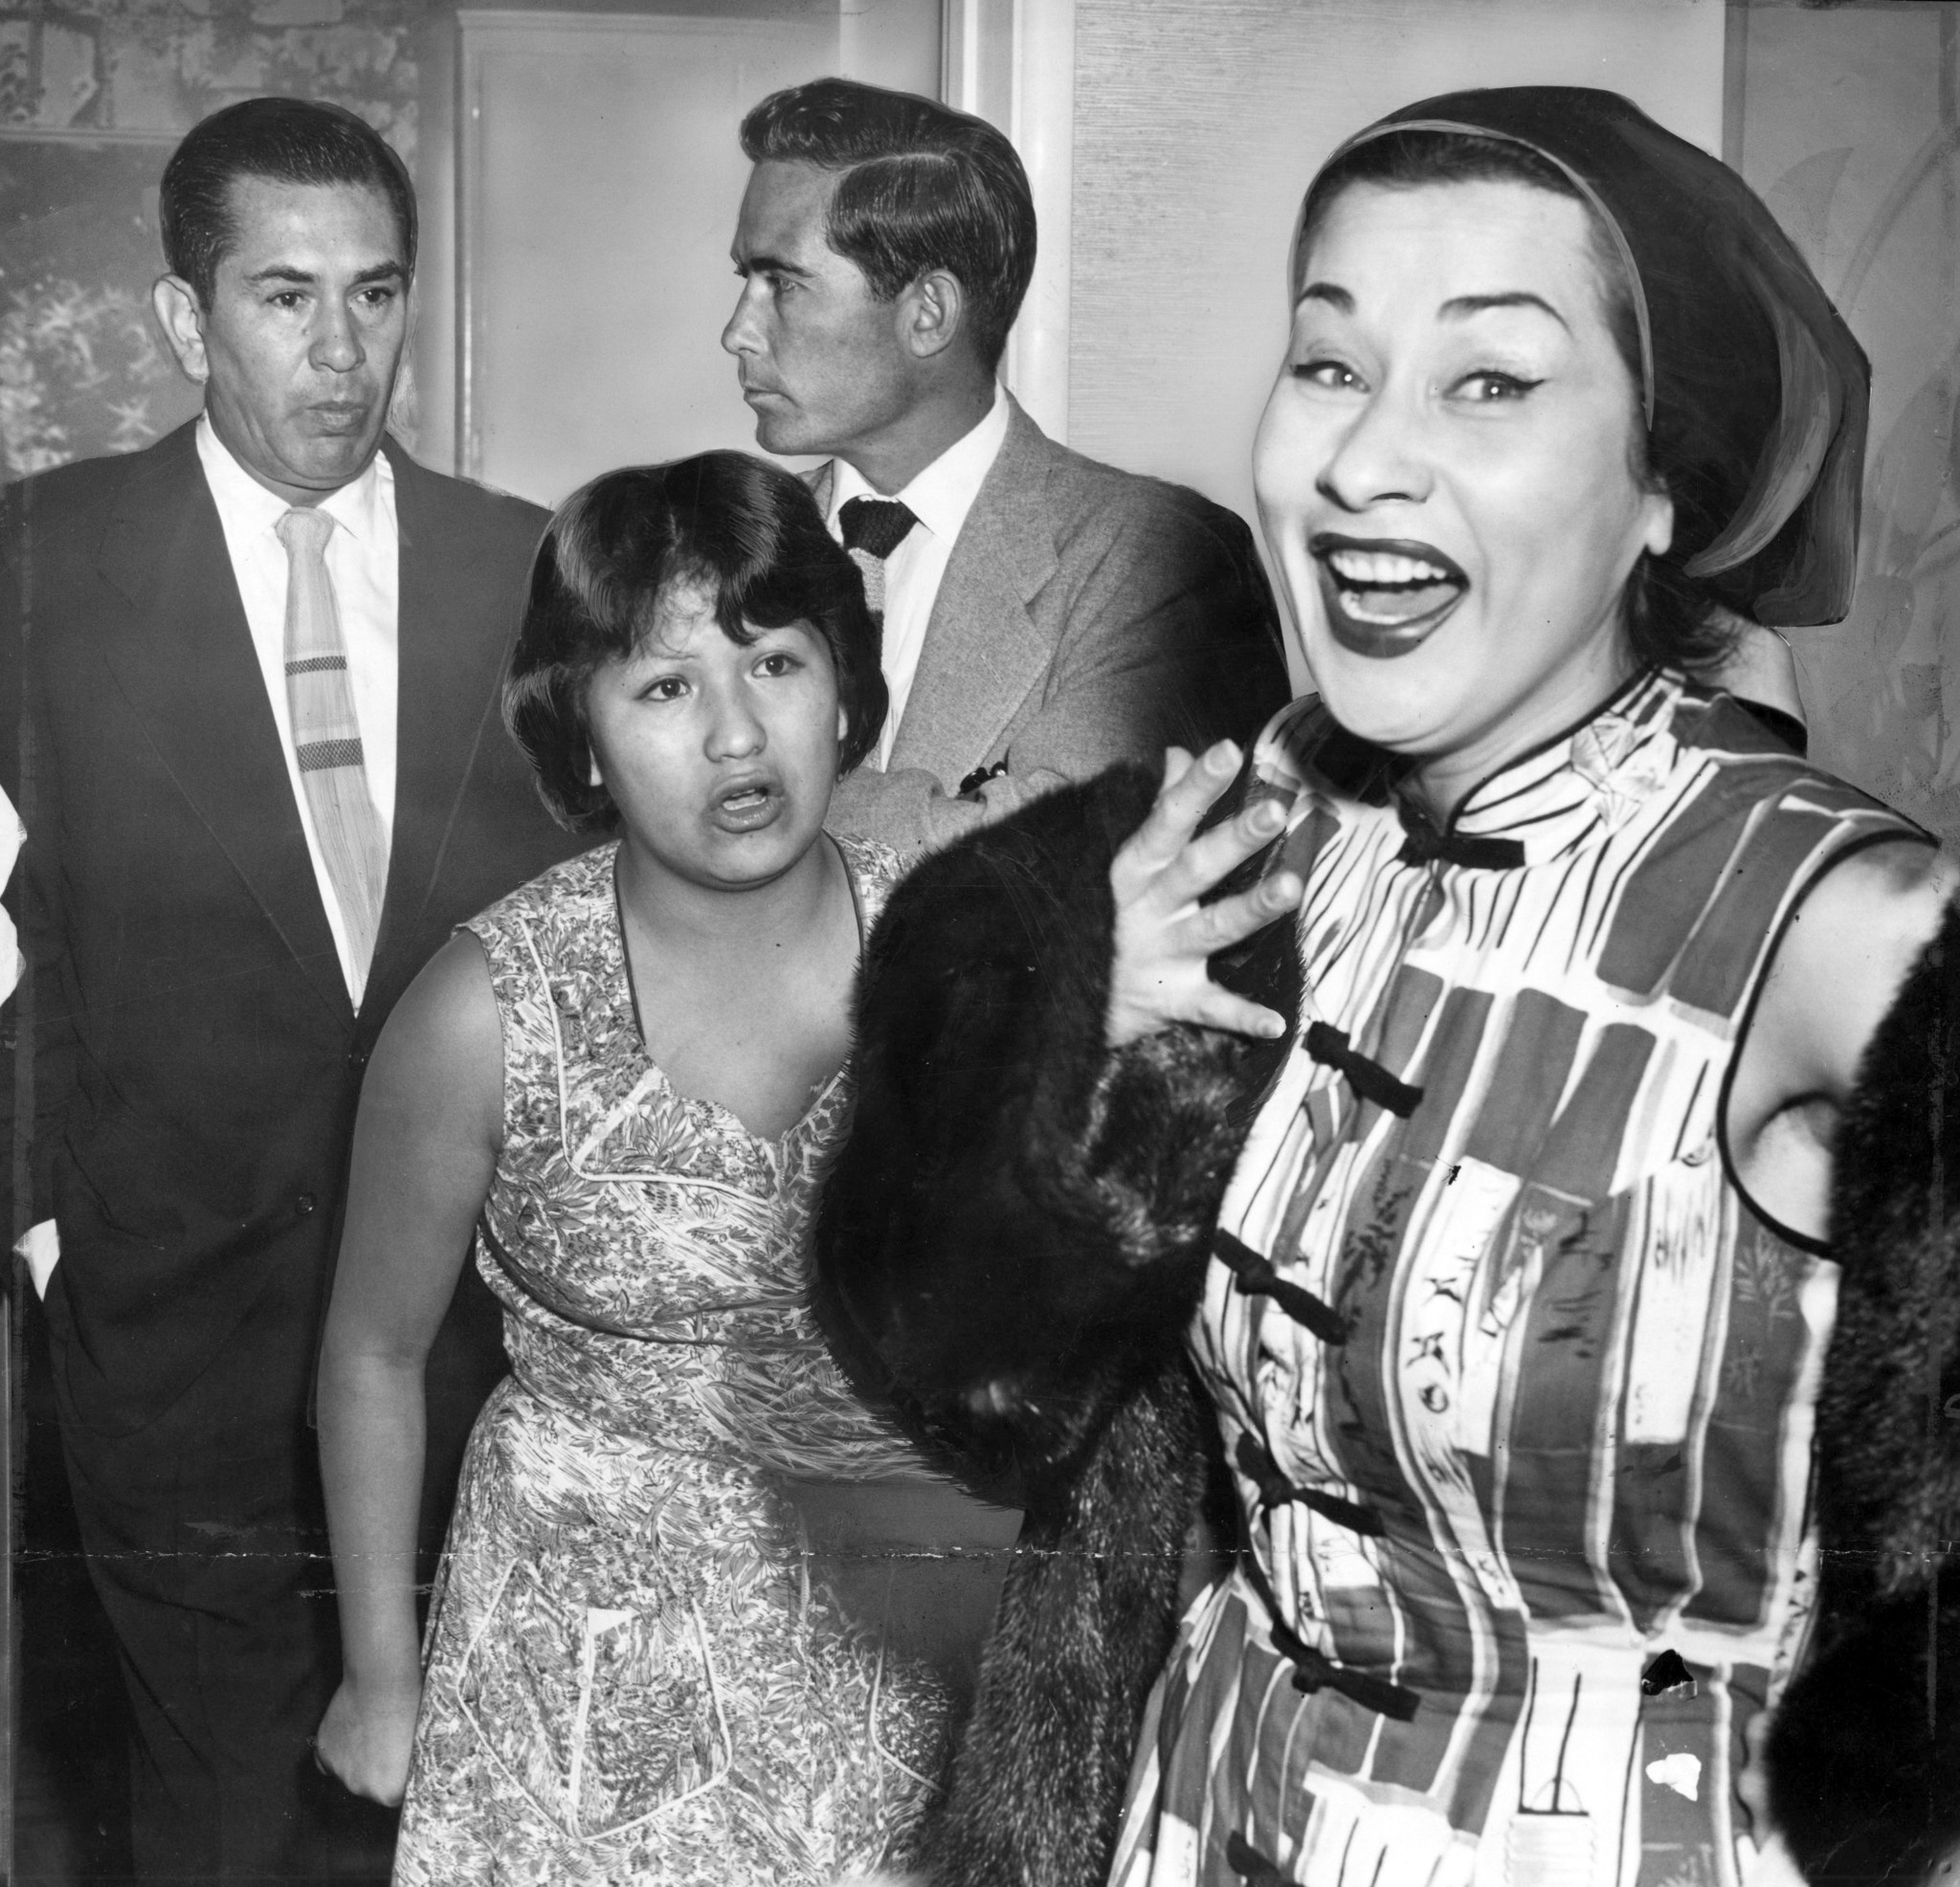 Sumac's personal travails often made headlines: Such as the family spat captured by a Times photographer in the 1950s.